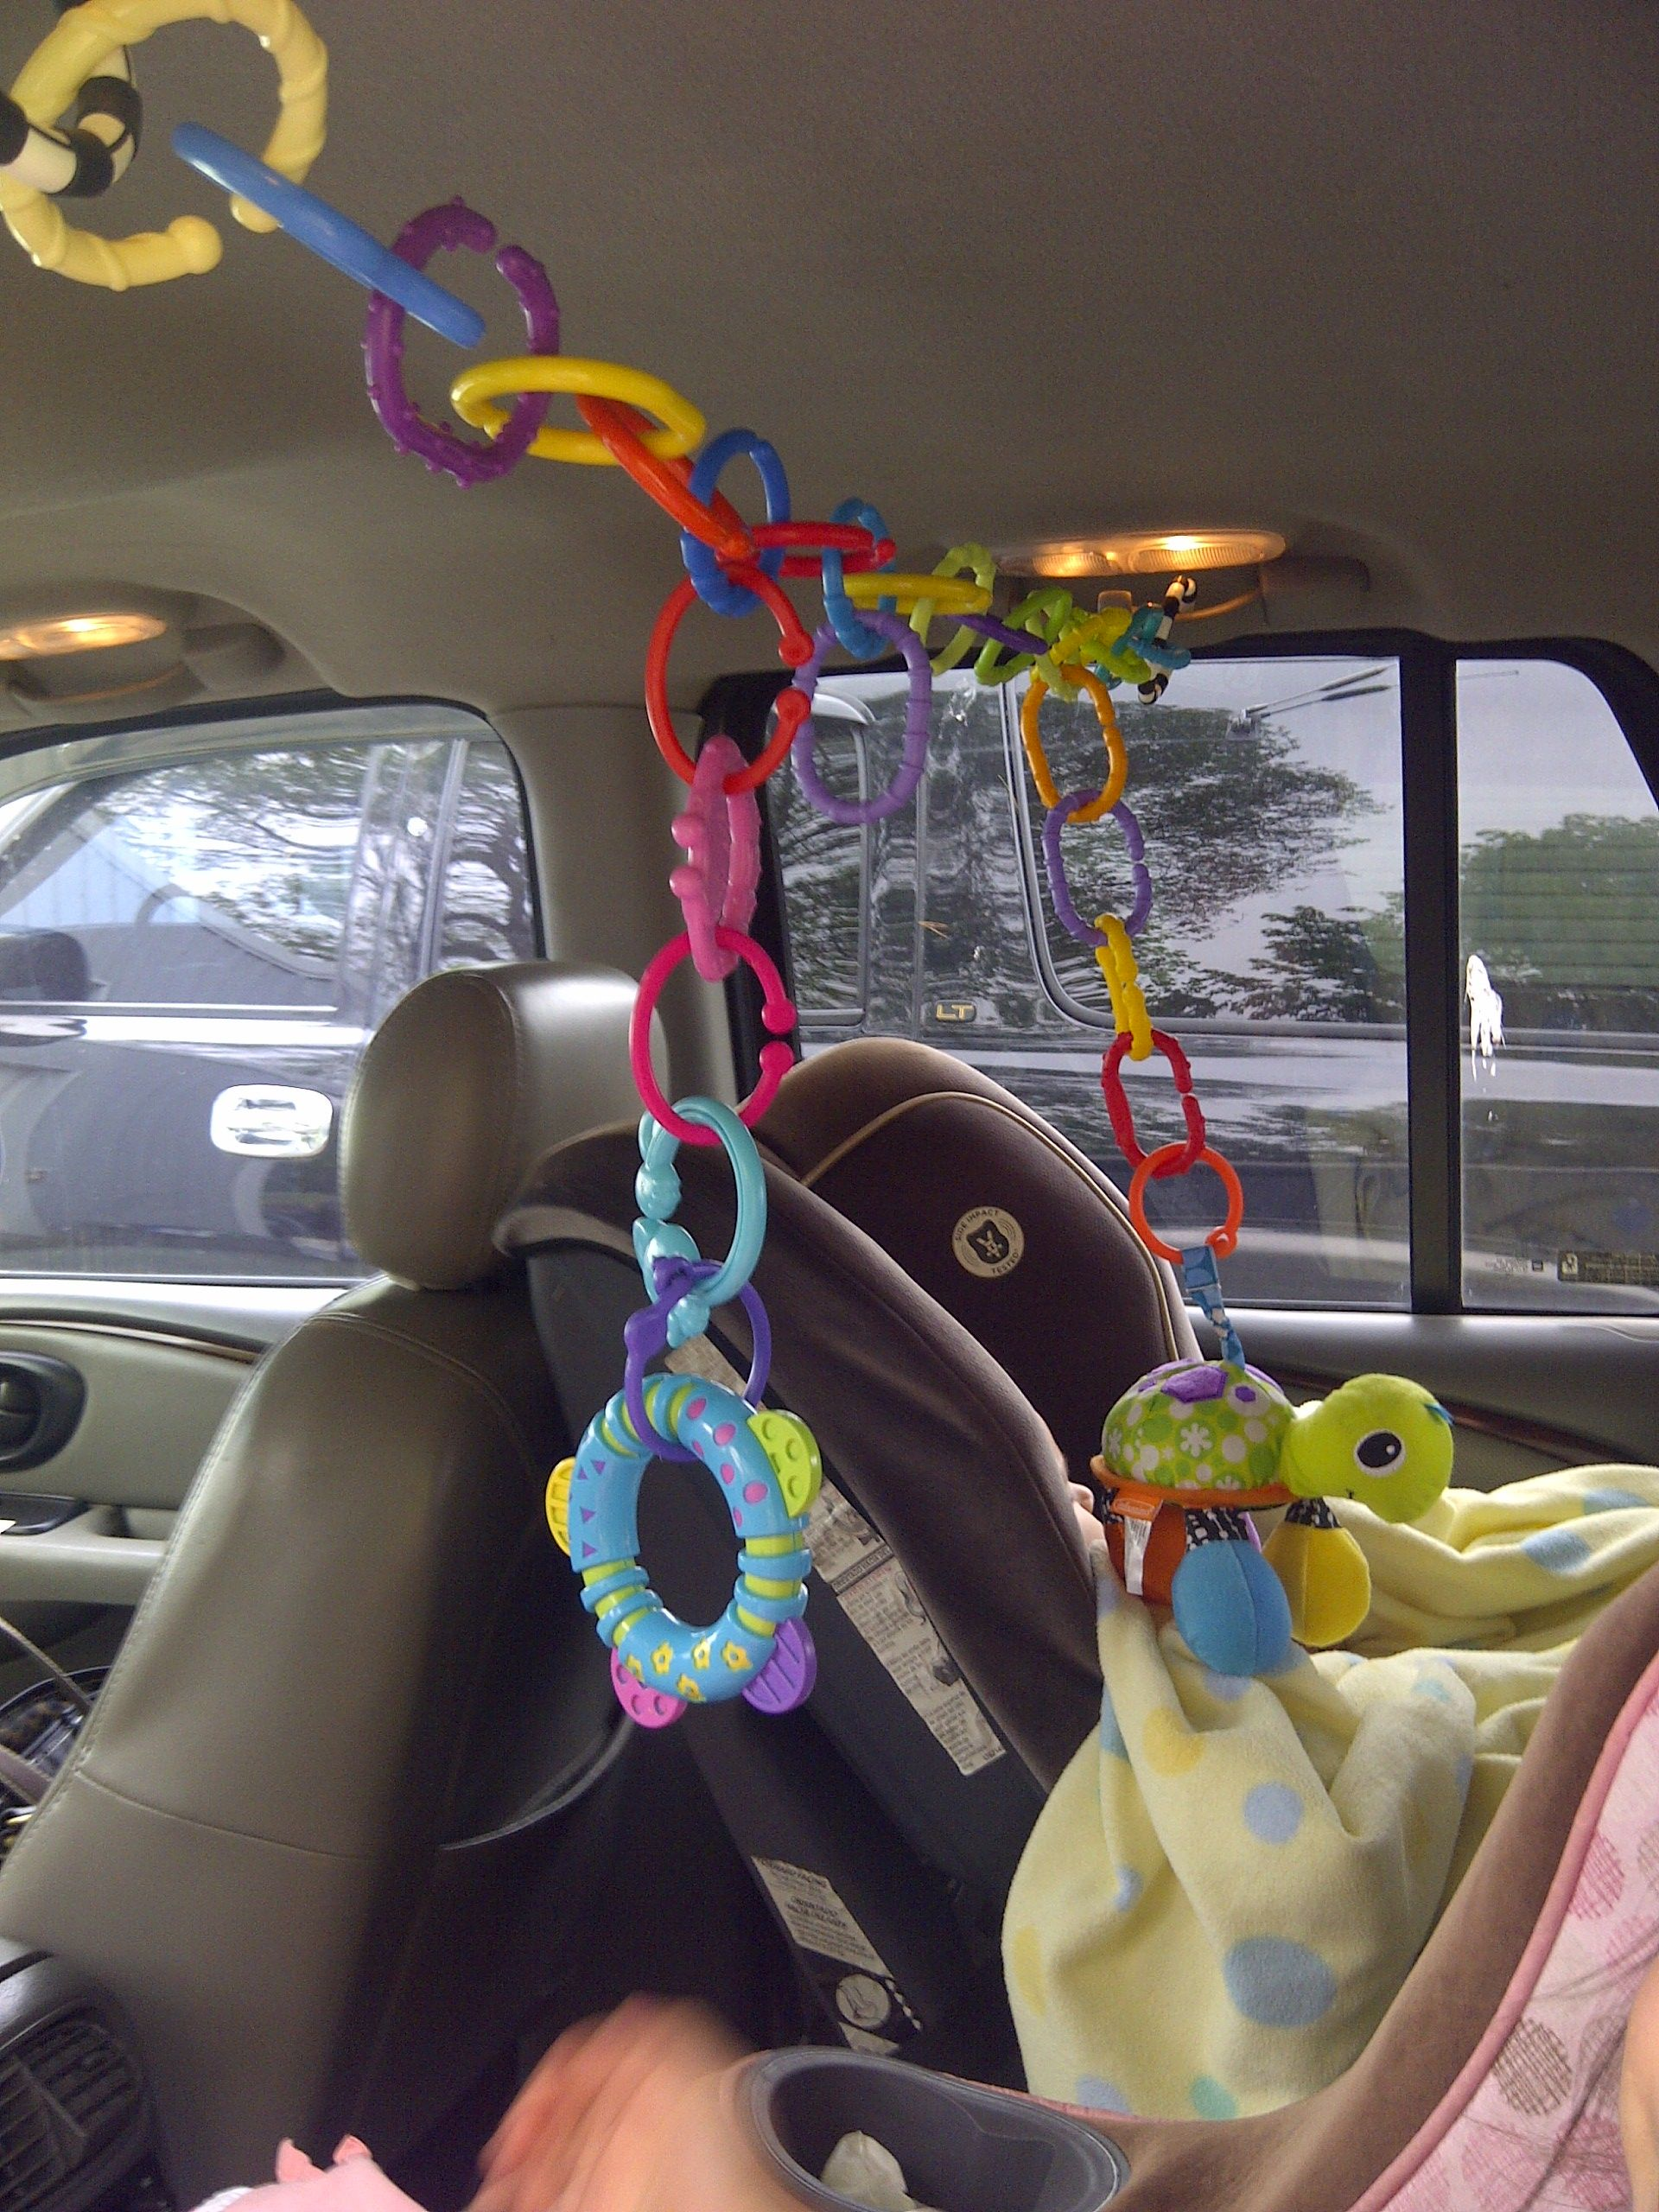 Big boy toys car  Connect links across the backseat to hang infant toys My son loved